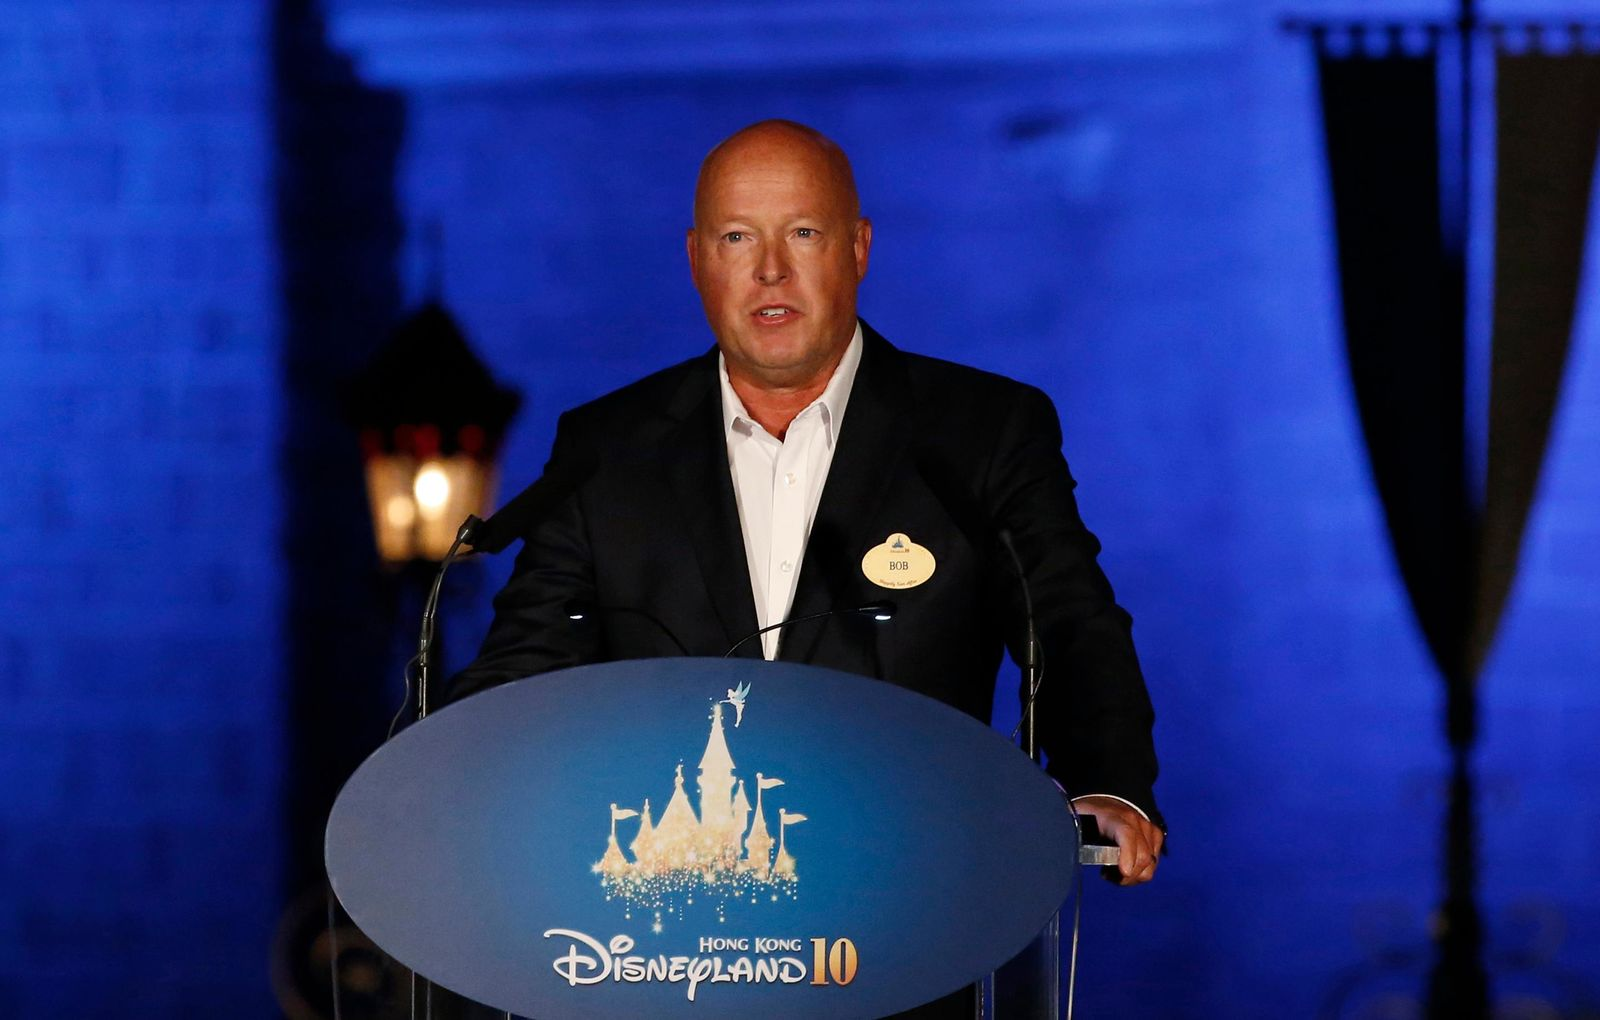 FILE - In this Sept. 11, 2015 file photo, Chairman of Walt Disney Parks and Resorts Bob Chapek speaks during a ceremony at the Hong Kong Disneyland. The Walt Disney Co. has named Chapek CEO, replacing Bob Iger, announced Tuesday, Feb. 25, 2020.    (AP Photo/Kin Cheung, File)